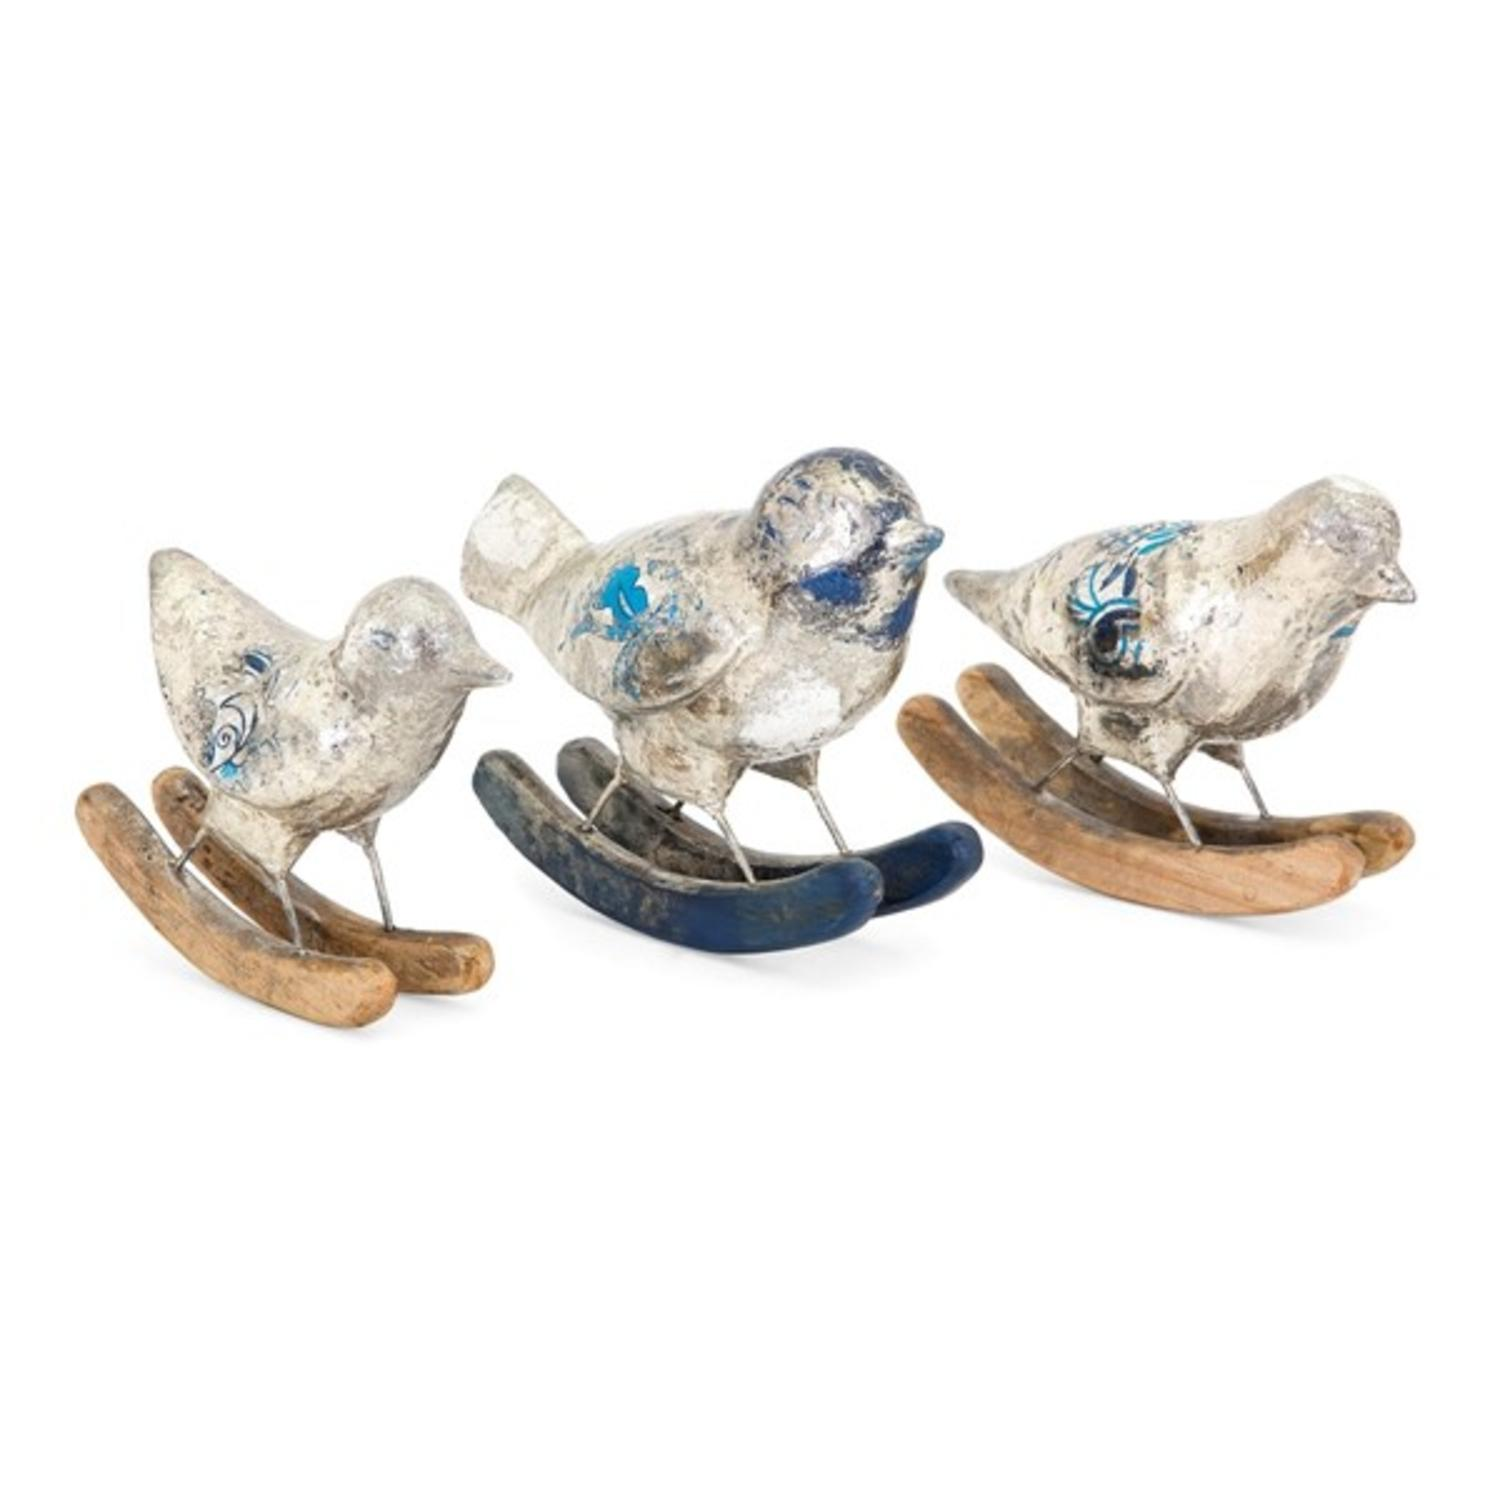 IMAX Set of 3 Fanciful Statue of Birds on Rockers of vari...